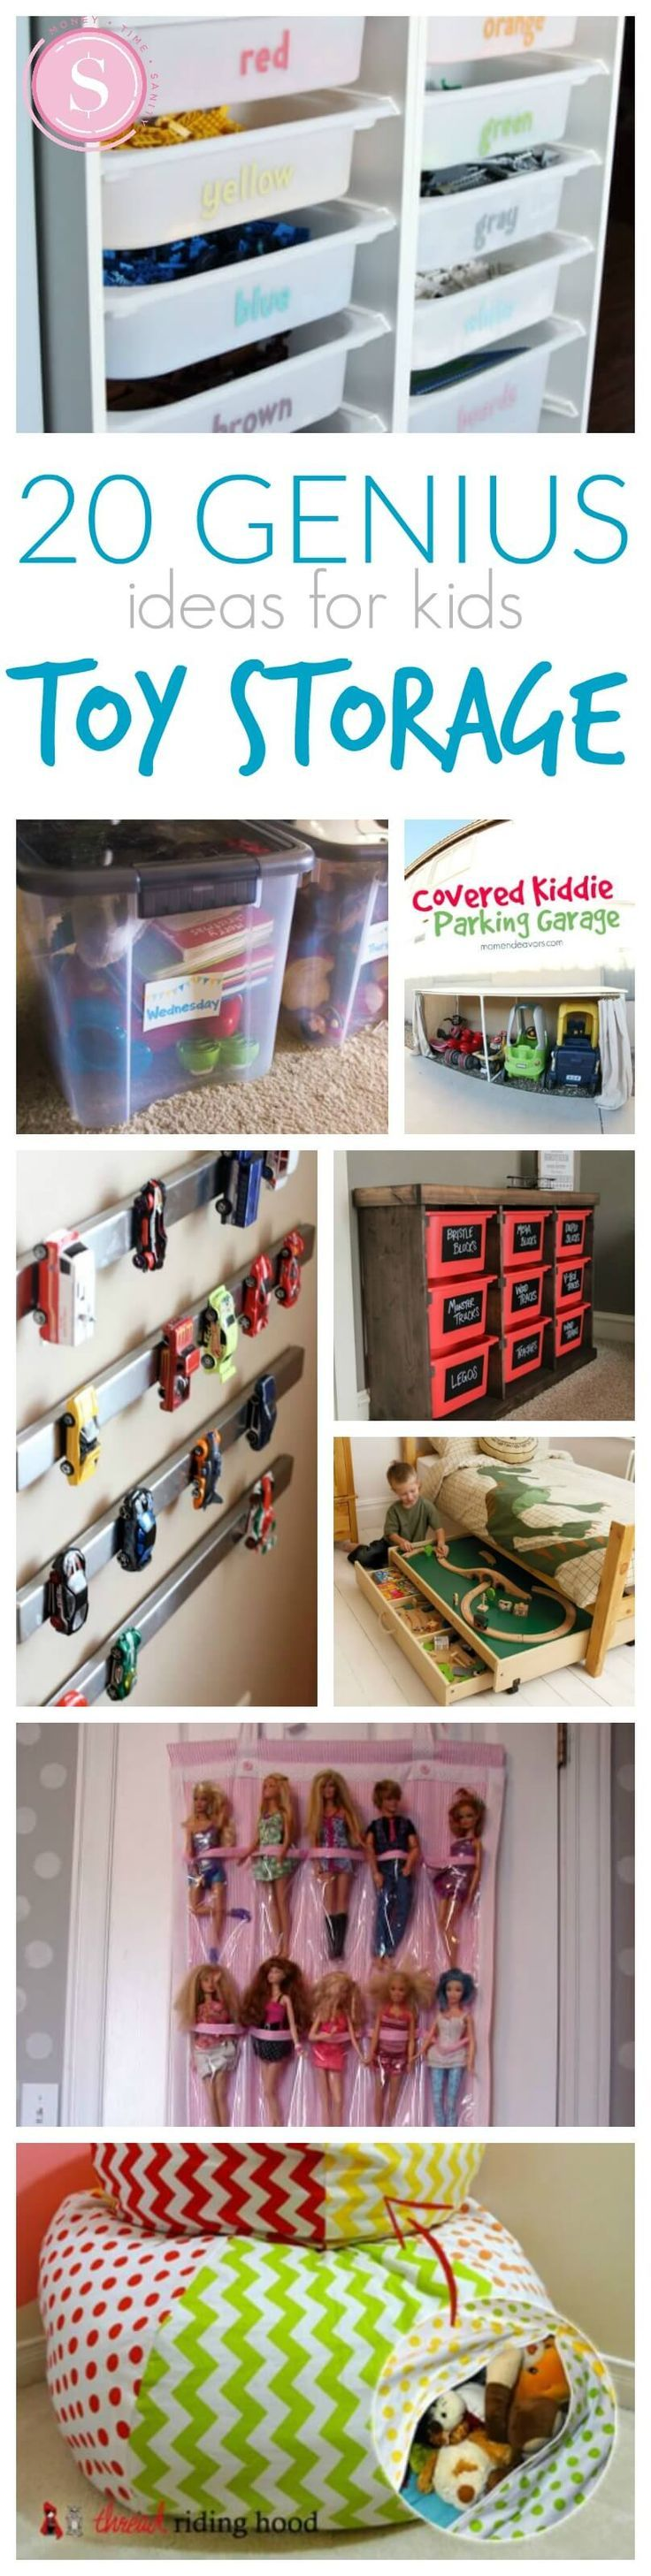 20 Genius Ideas for Organizing Your Kid's Rooms! Great tips and tricks to tackle before School Starts!